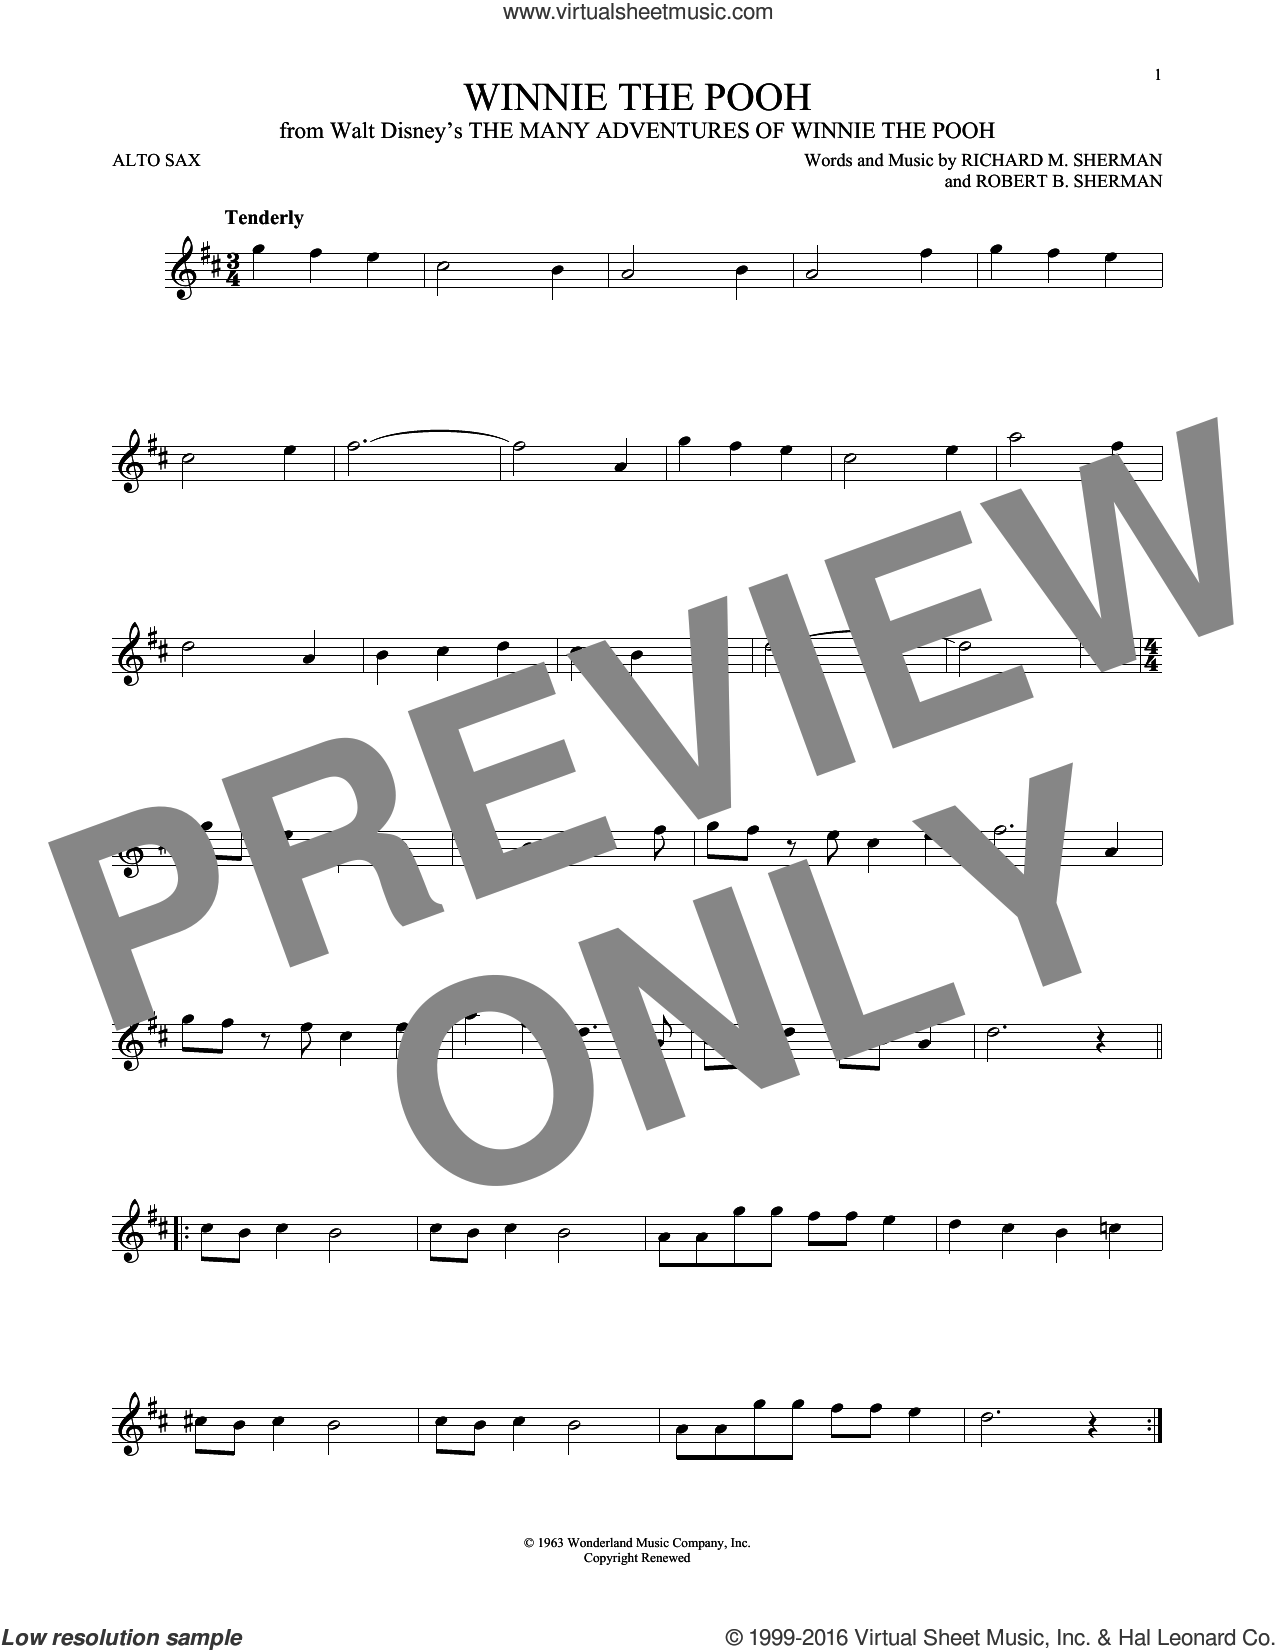 Winnie The Pooh sheet music for alto saxophone solo by Richard M. Sherman and Robert B. Sherman, intermediate skill level